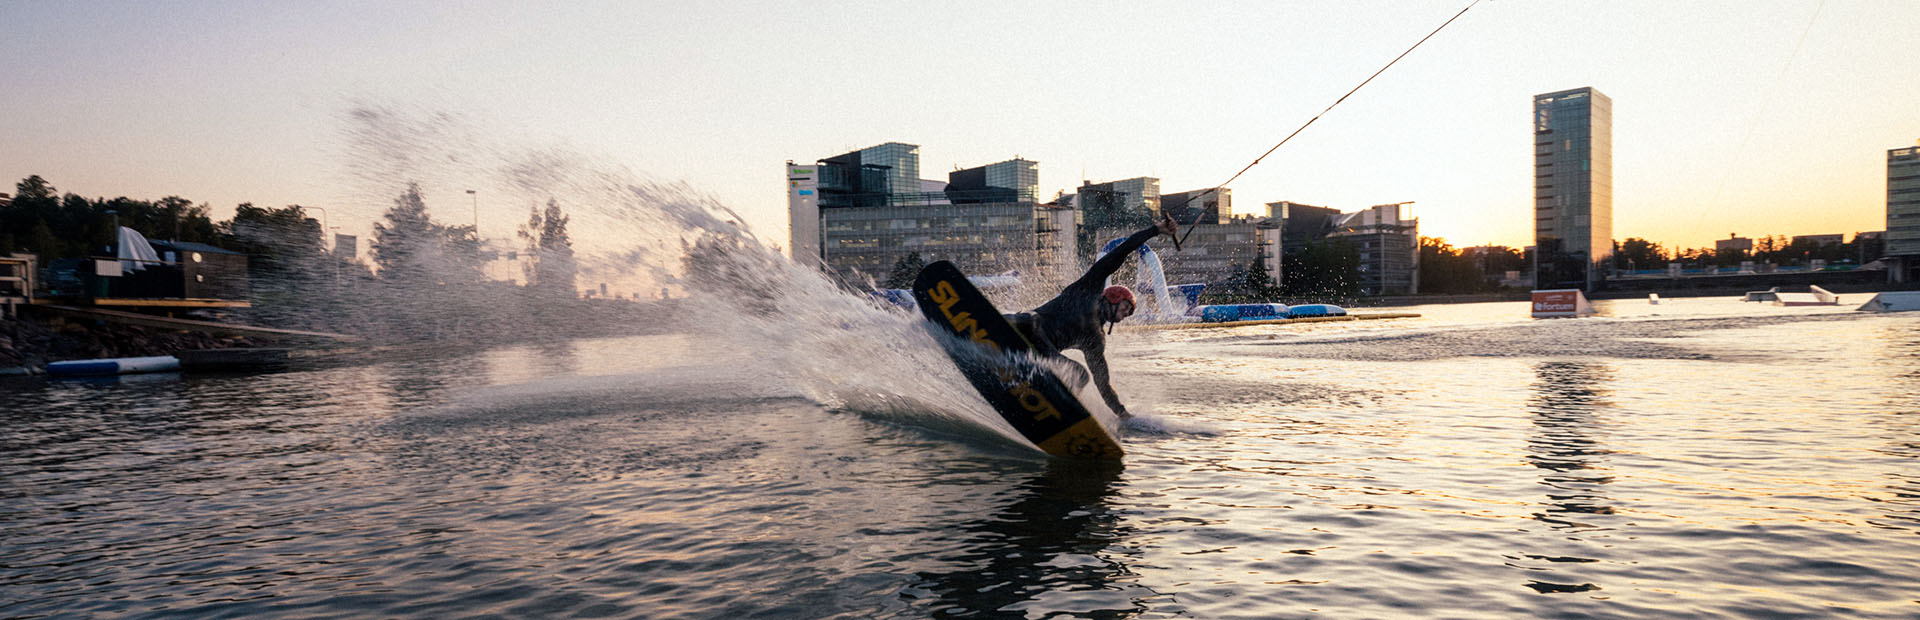 Wakeboarder in the shades of evening sun at the sea in Keilaniemi, Espoo.